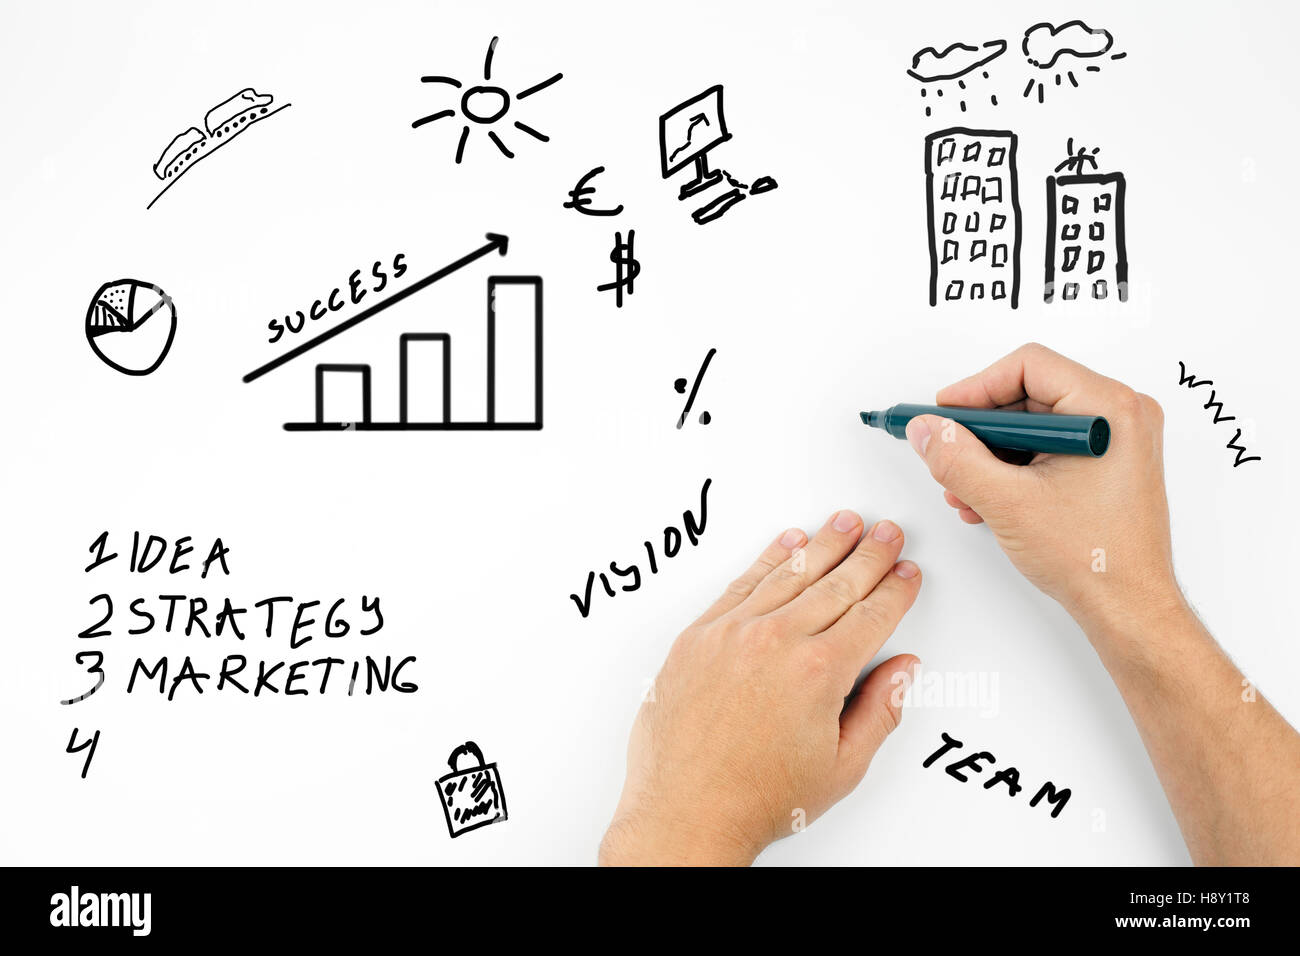 business man writing business plan concept - Stock Image